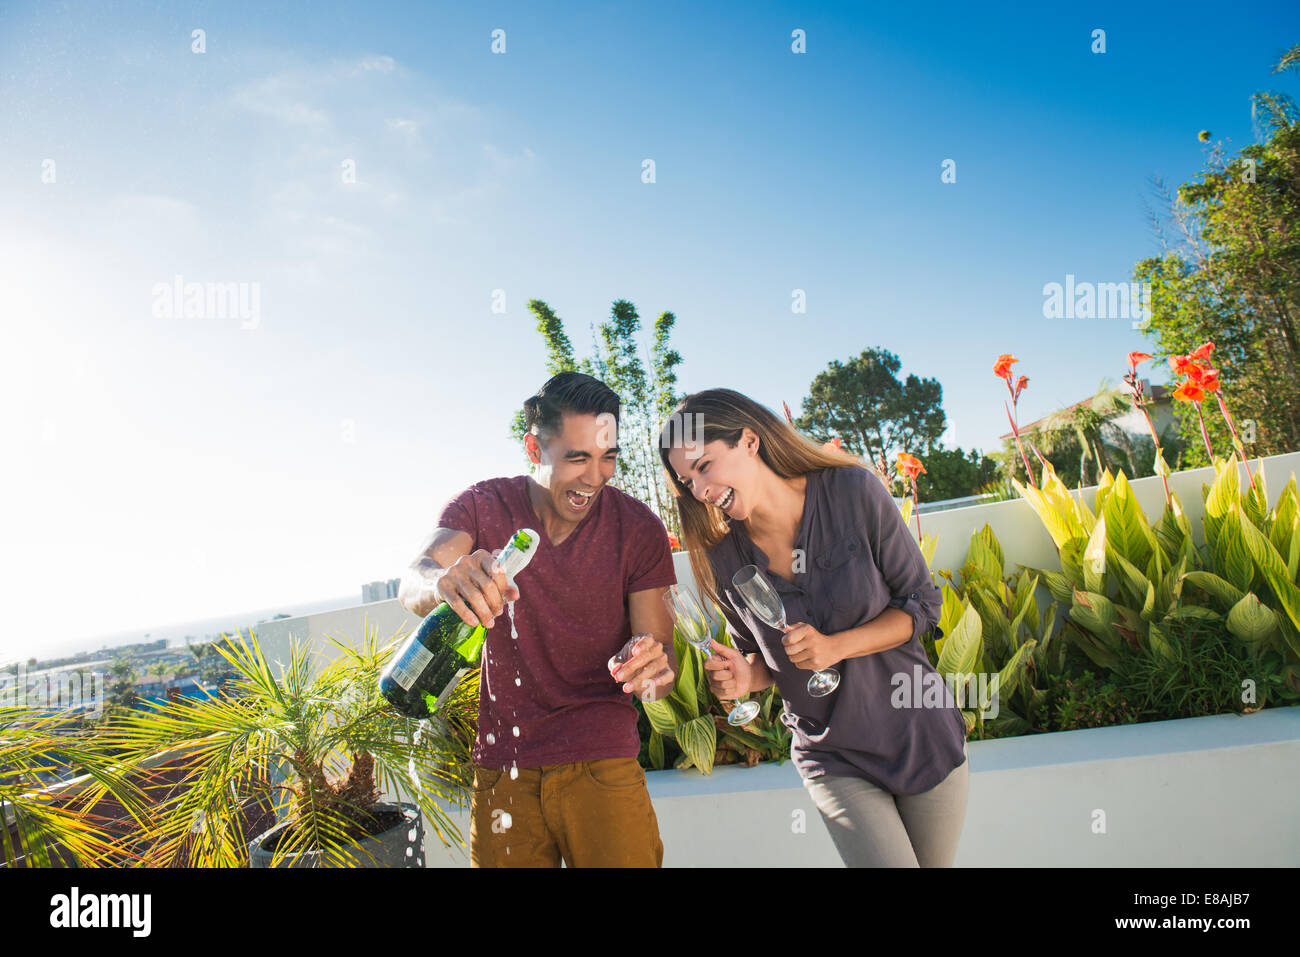 Couple opening champagne in penthouse rooftop garden, La Jolla, California, USA - Stock Image